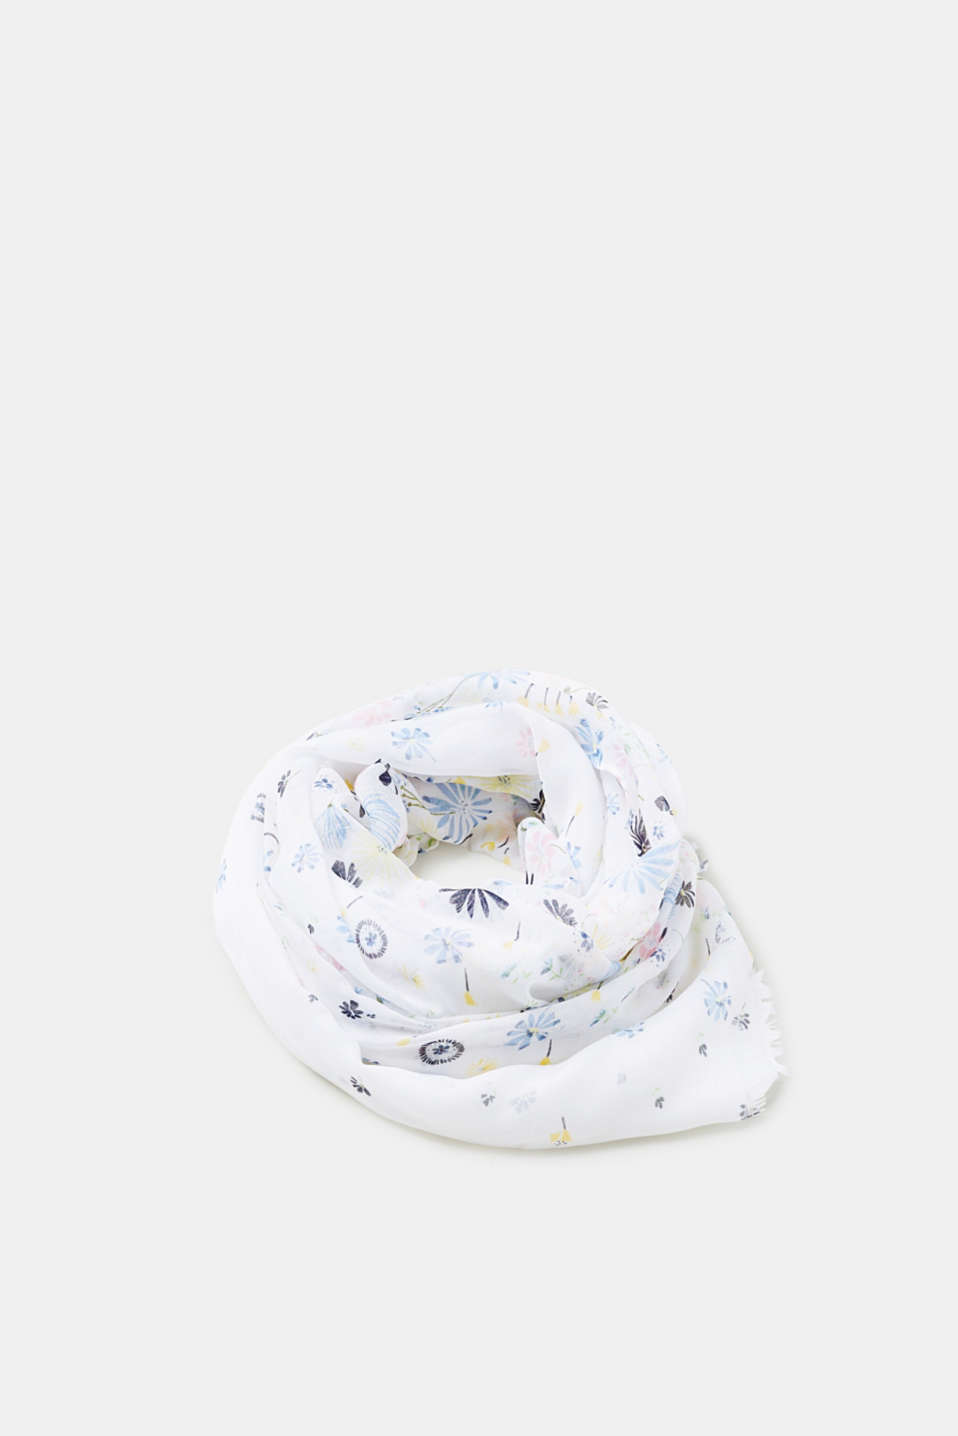 Esprit - Woven scarf with a floral print